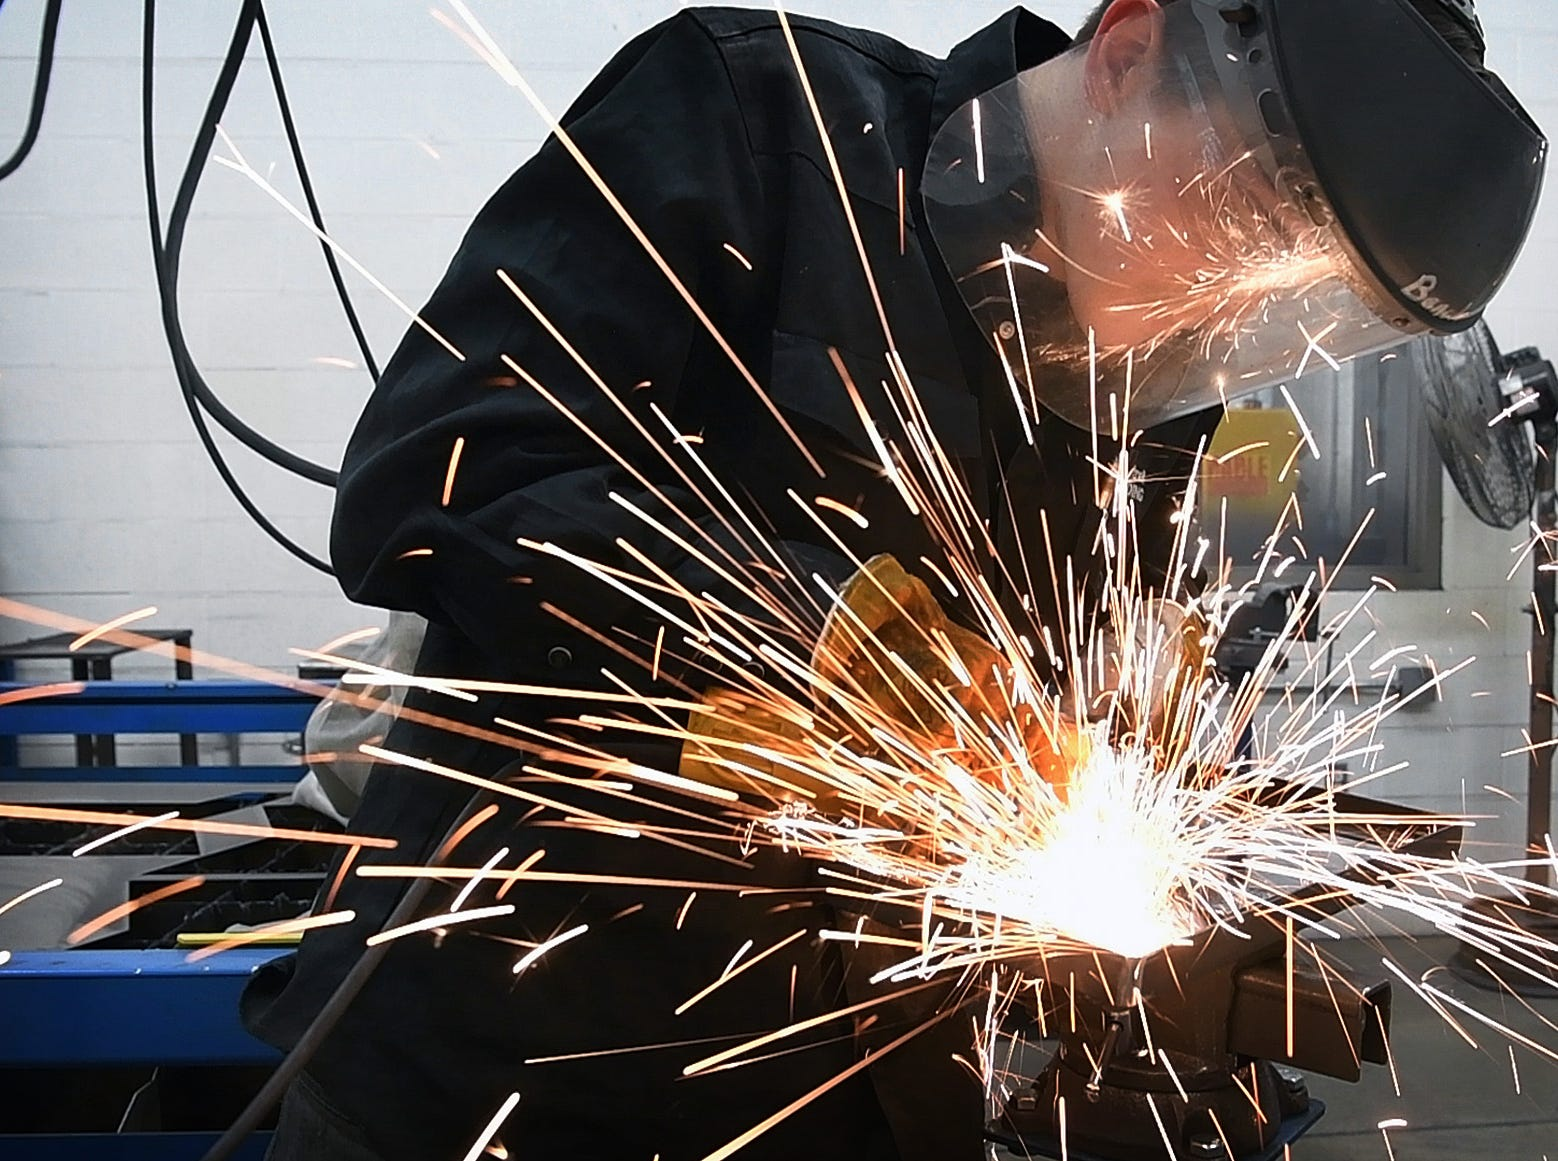 Sparks fly as Welding Technology student Jack Cantrell grinds welds on the steel base of a helicopter sculpture he's creating in honor of his late brother, Stephen Cantrell, who flew Blackhawk helicopters in Iraq and Afghanistan.